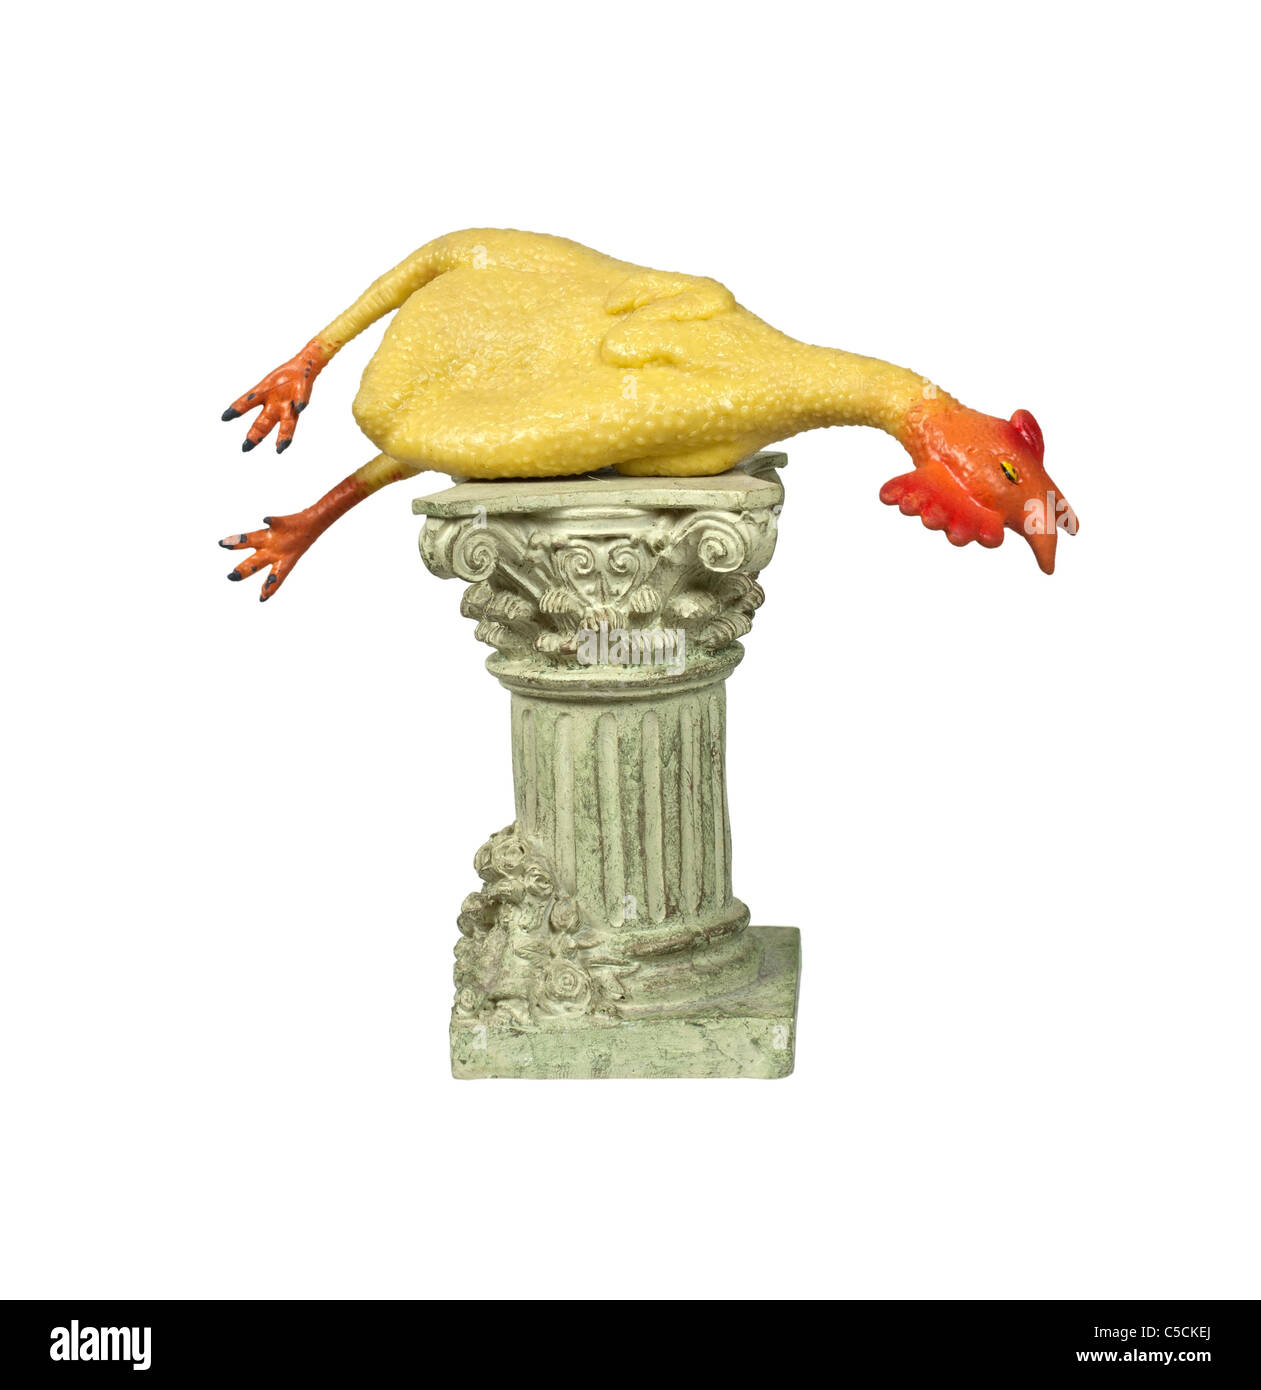 Classical joke shown by a rubber chicken on a formal stone pedestal - path included - Stock Image